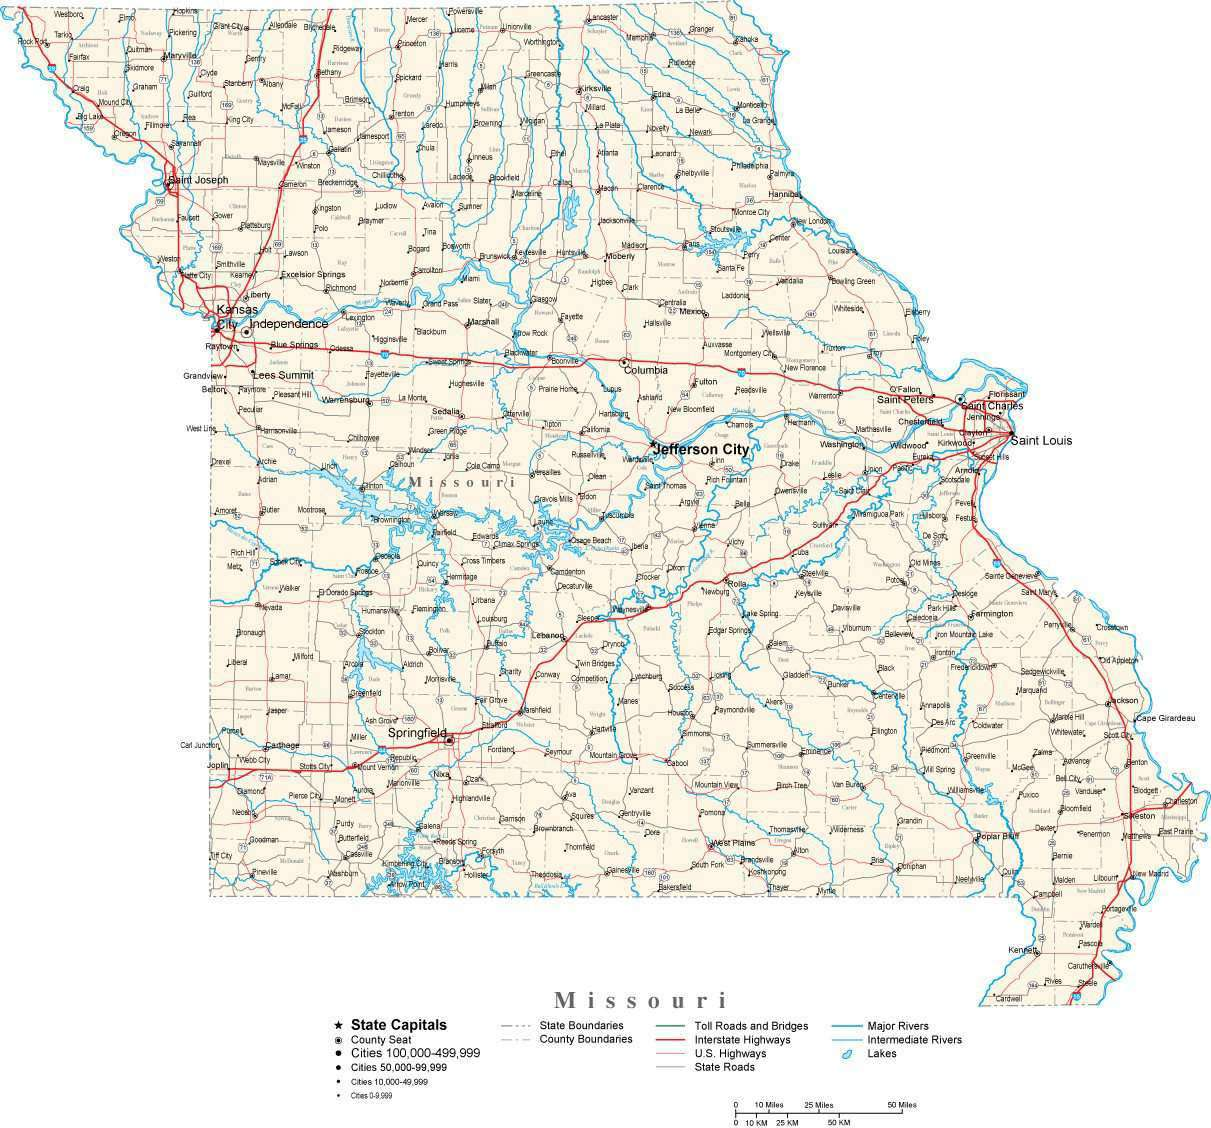 Missouri Map With County Lines.Missouri State Map In Fit Together Style To Match Other States Map